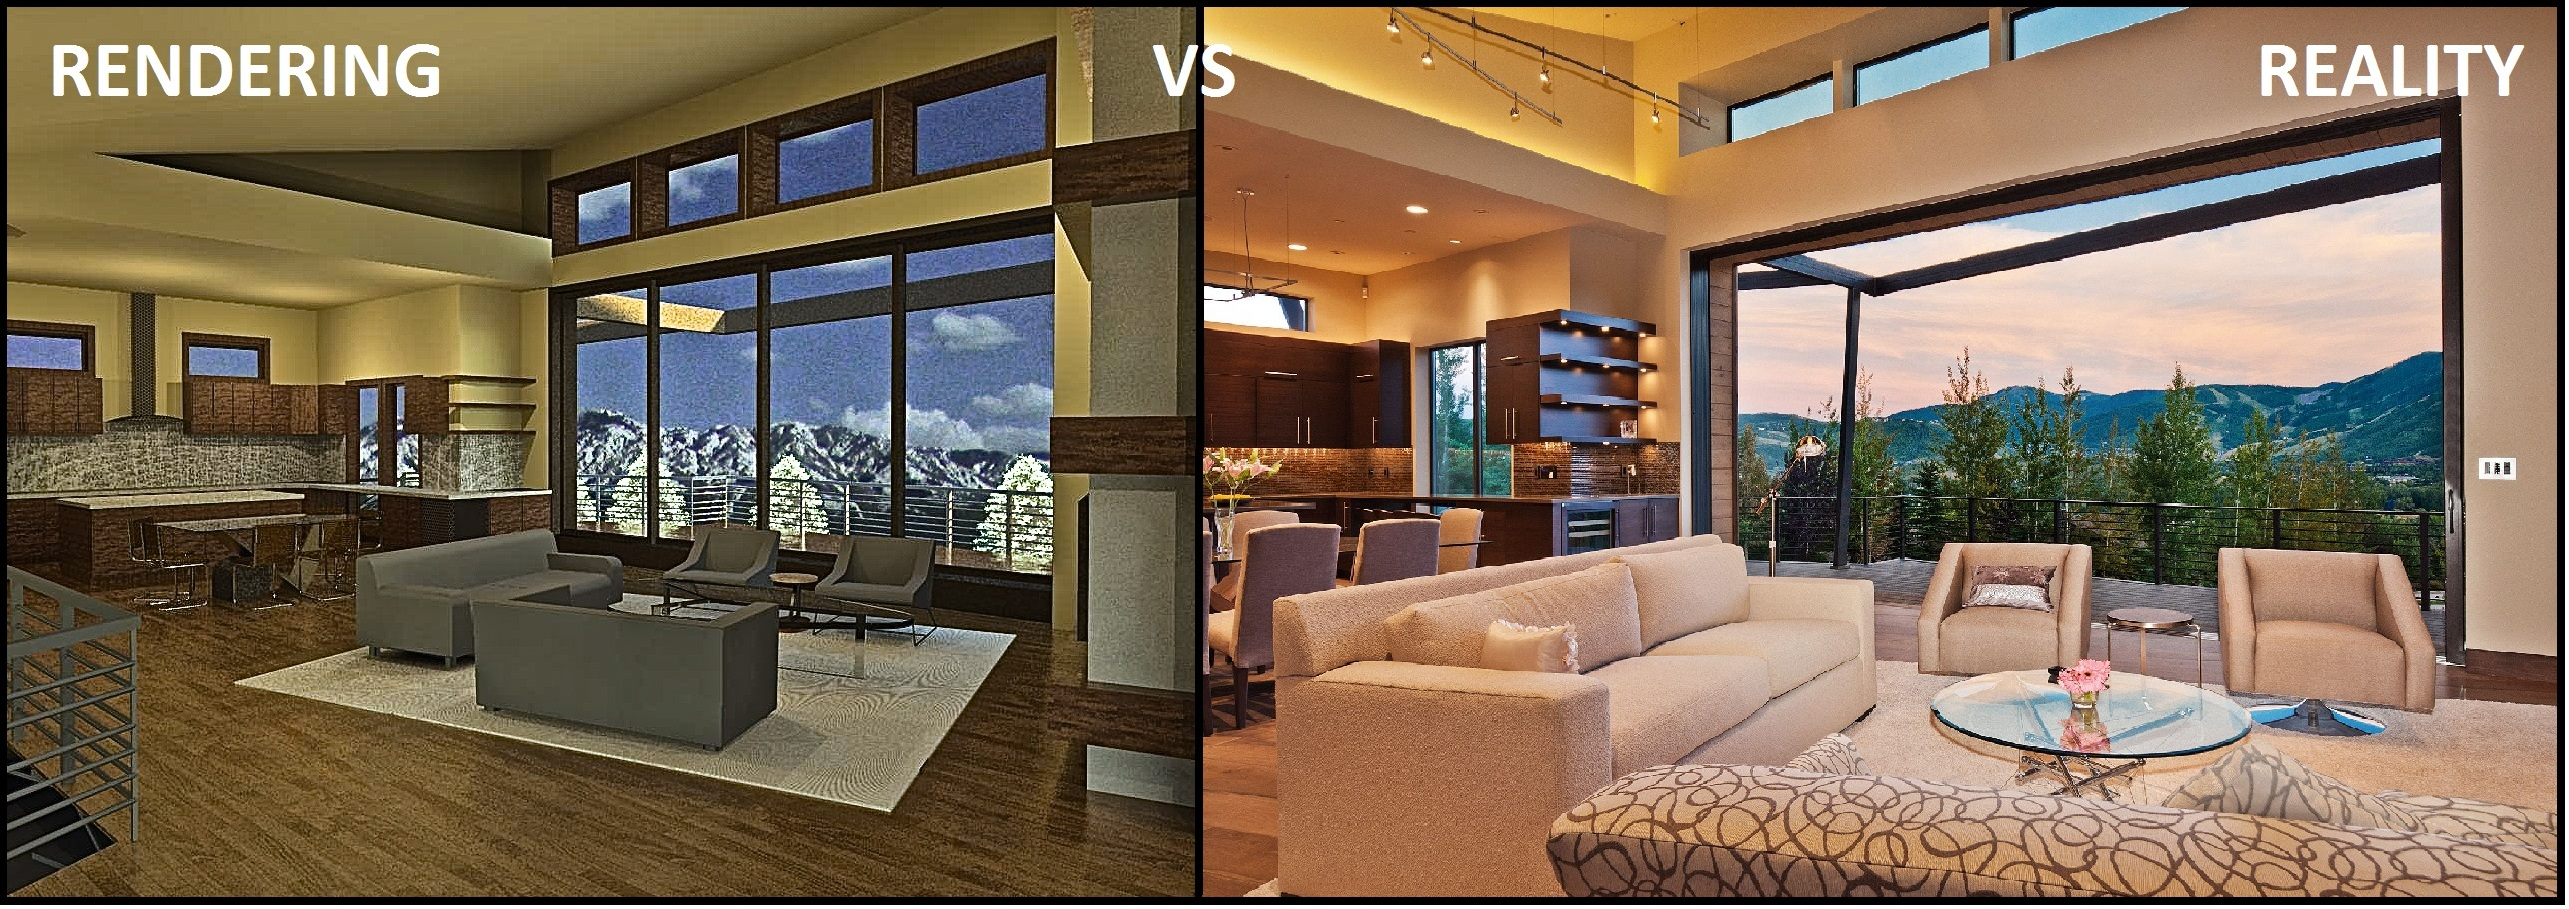 Rendering vs Reality Great Room